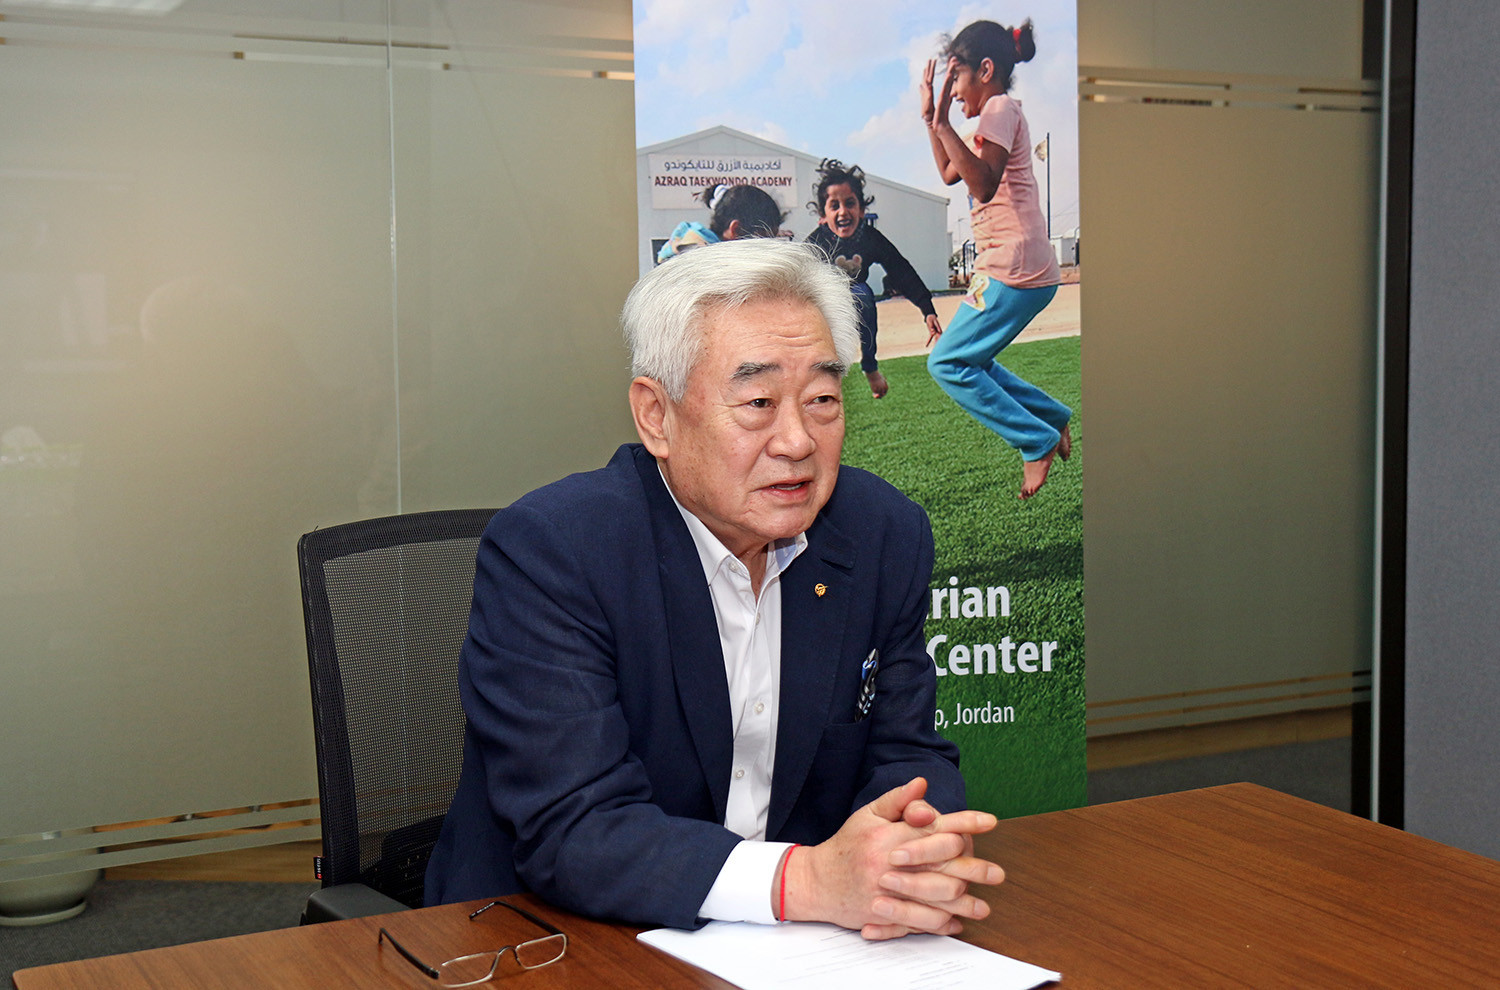 World Taekwondo President calls on sport to increase cooperation to help peace effort